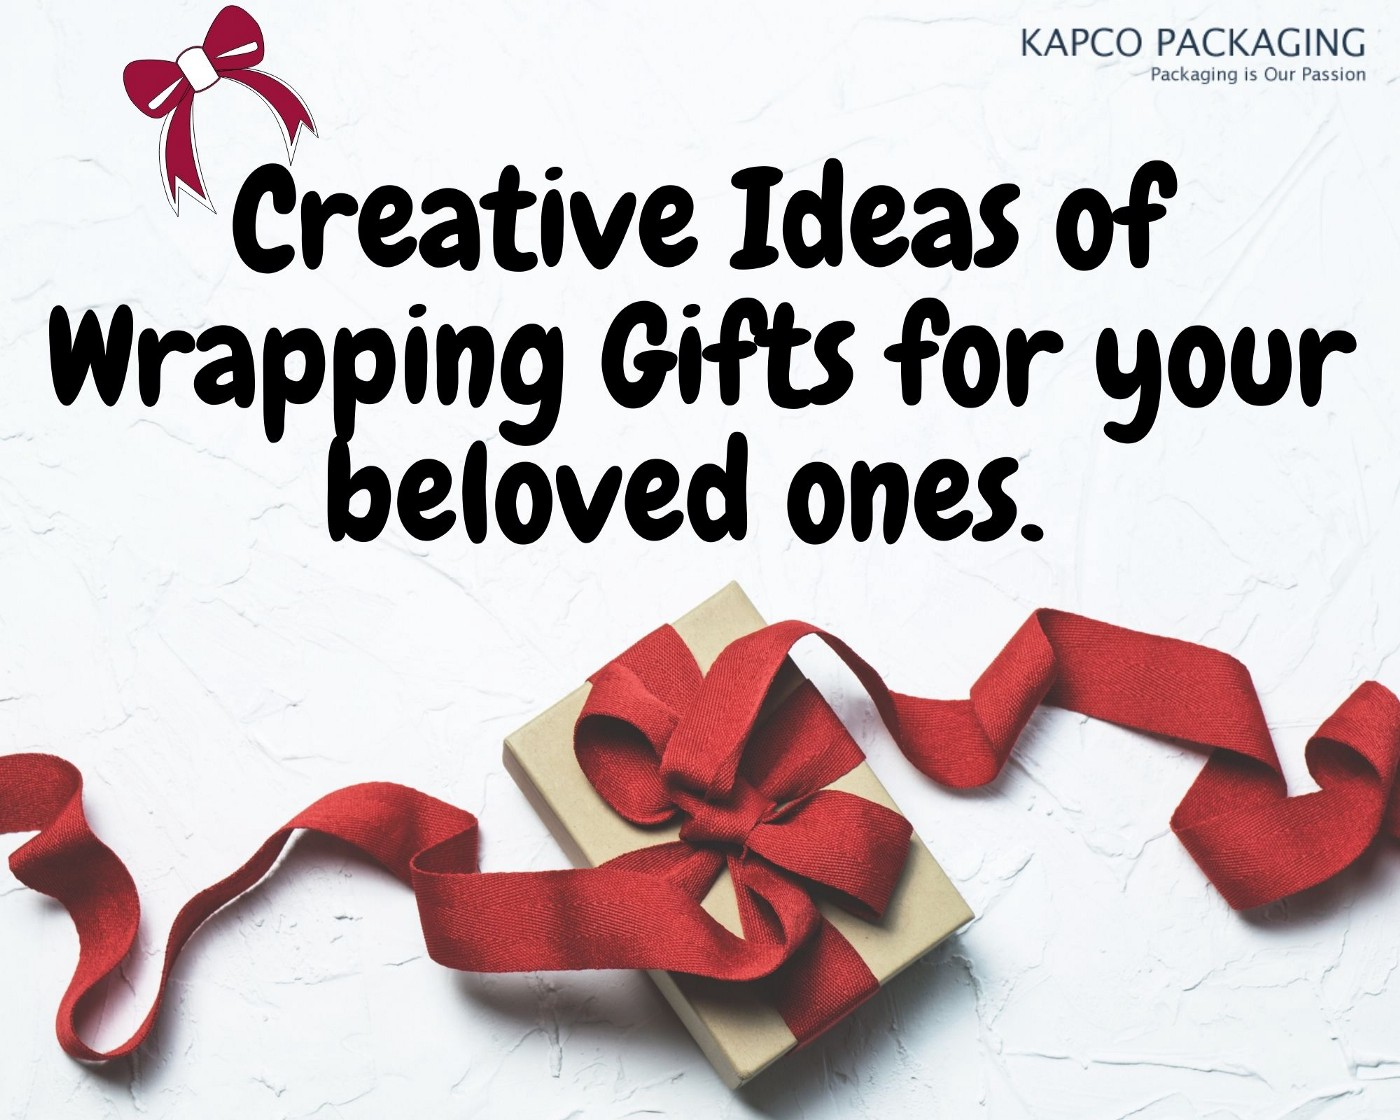 Creative Ideas of Wrapping Gifts for your beloved ones.